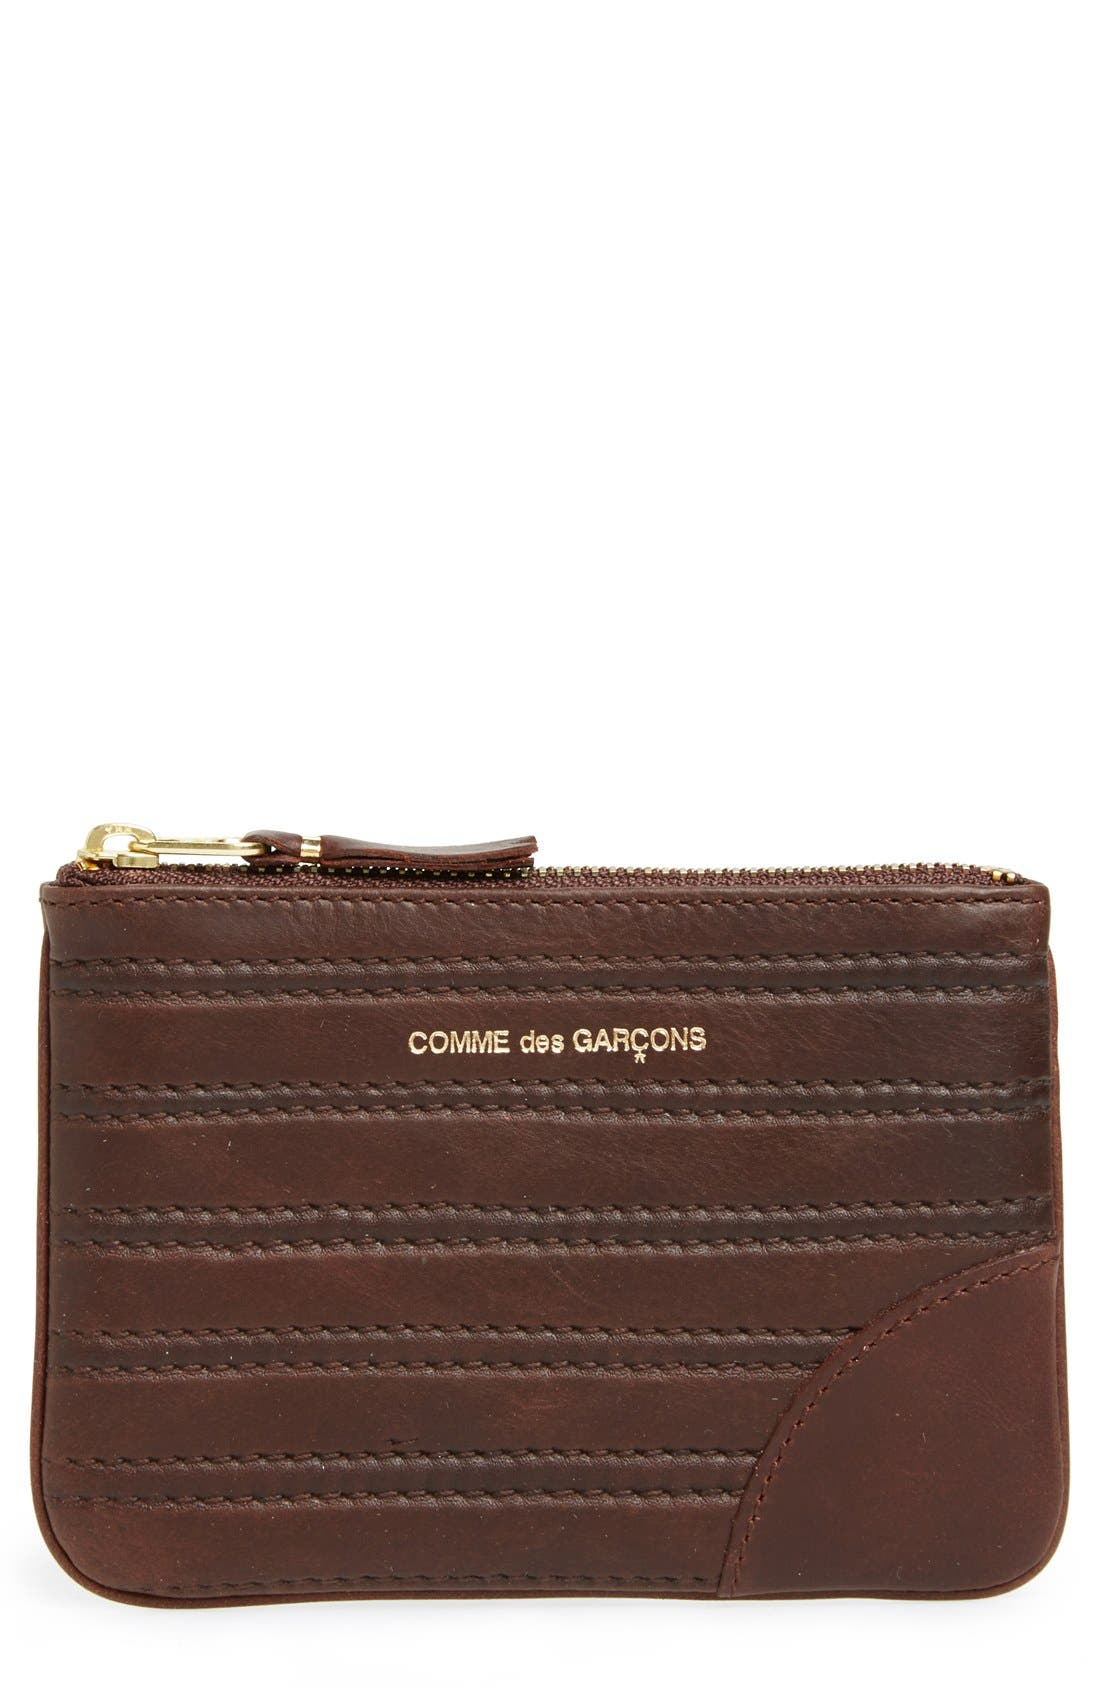 Alternate Image 1 Selected - Comme des Garçons Embossed Leather Top Zip Pouch Wallet